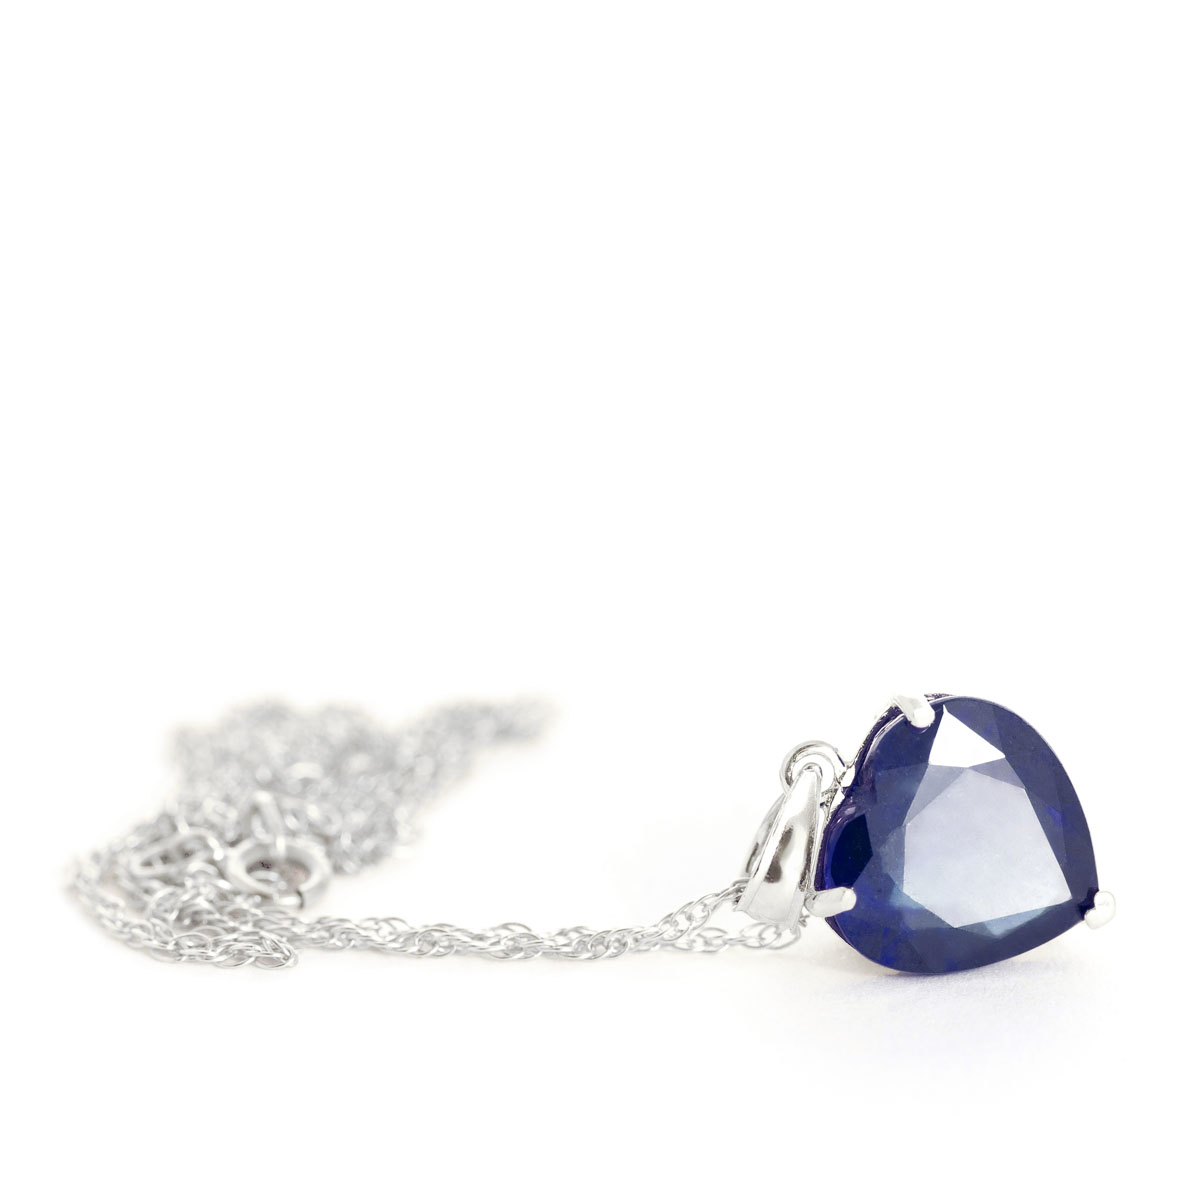 Sapphire Large Heart Pendant Necklace 4.3 ct in 9ct White Gold